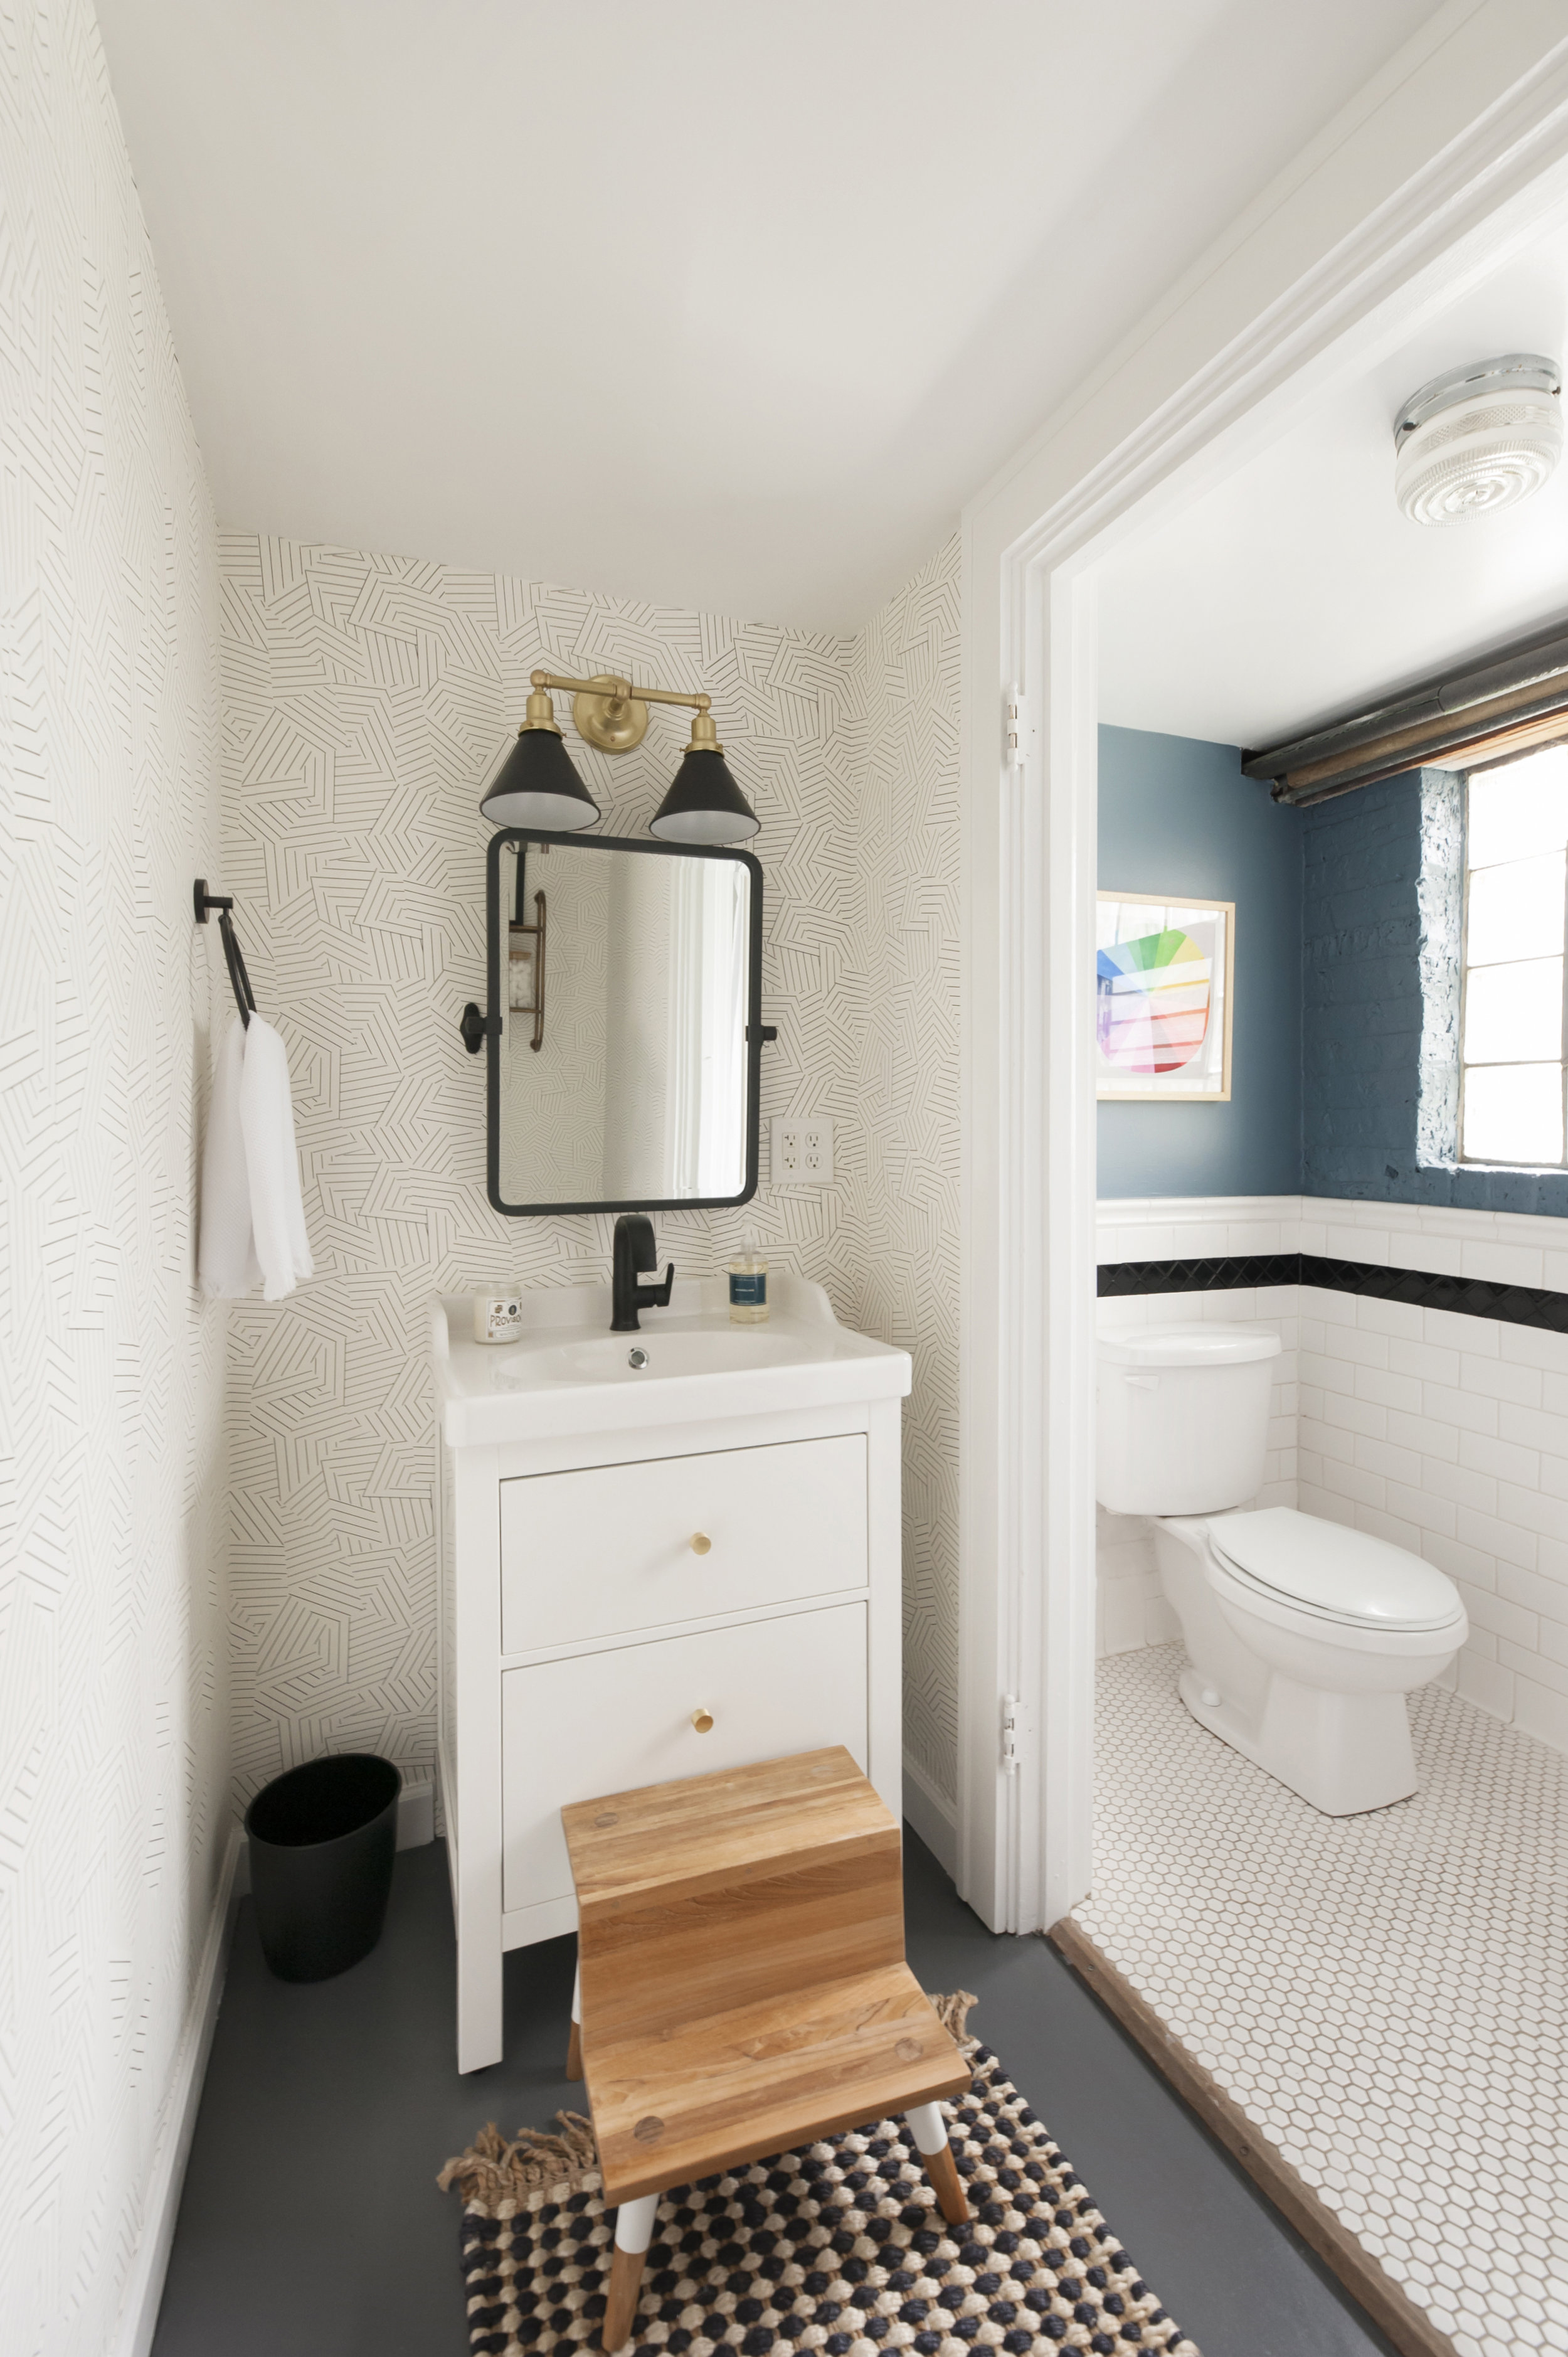 Adding a playful, geometric wallpaper, a new vanity, new lighting and plumbing fixtures really brought it together!